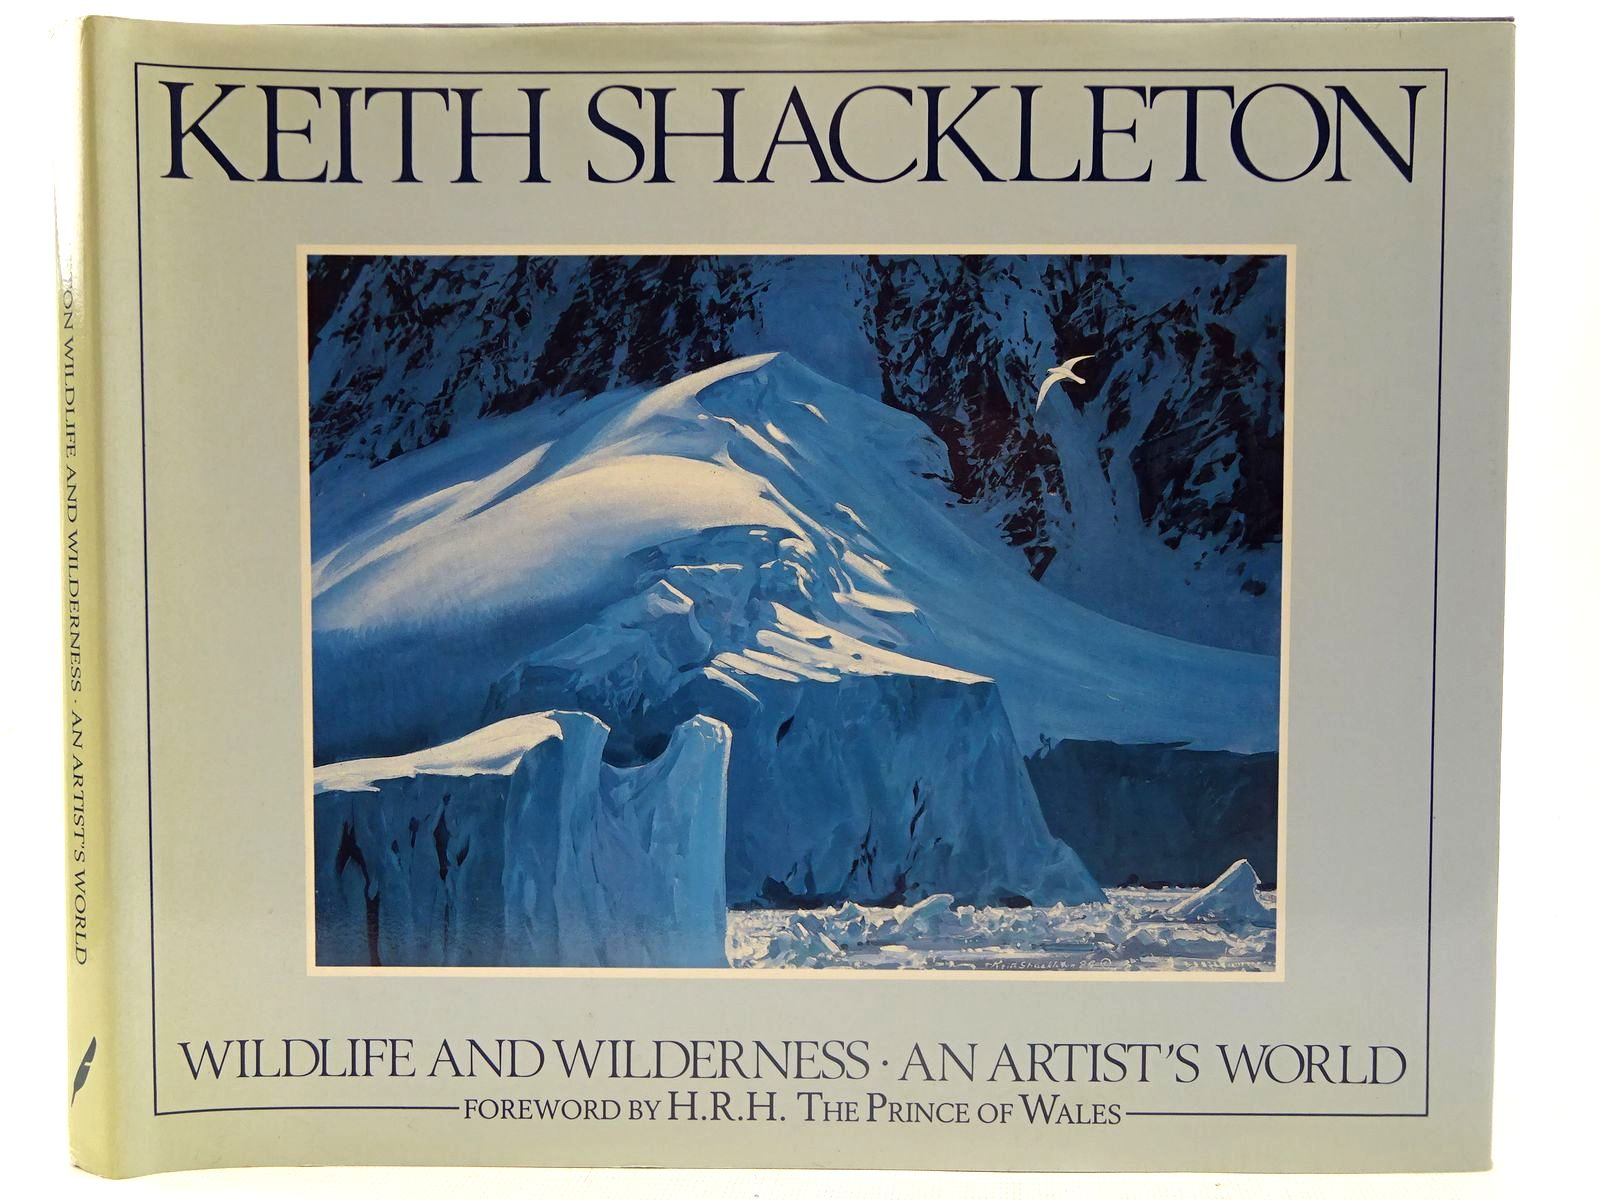 Photo of WILDLIFE AND WILDERNESS AN ARTIST'S WORLD written by Shackleton, Keith illustrated by Shackleton, Keith published by Clive Holloway Books (STOCK CODE: 2128310)  for sale by Stella & Rose's Books